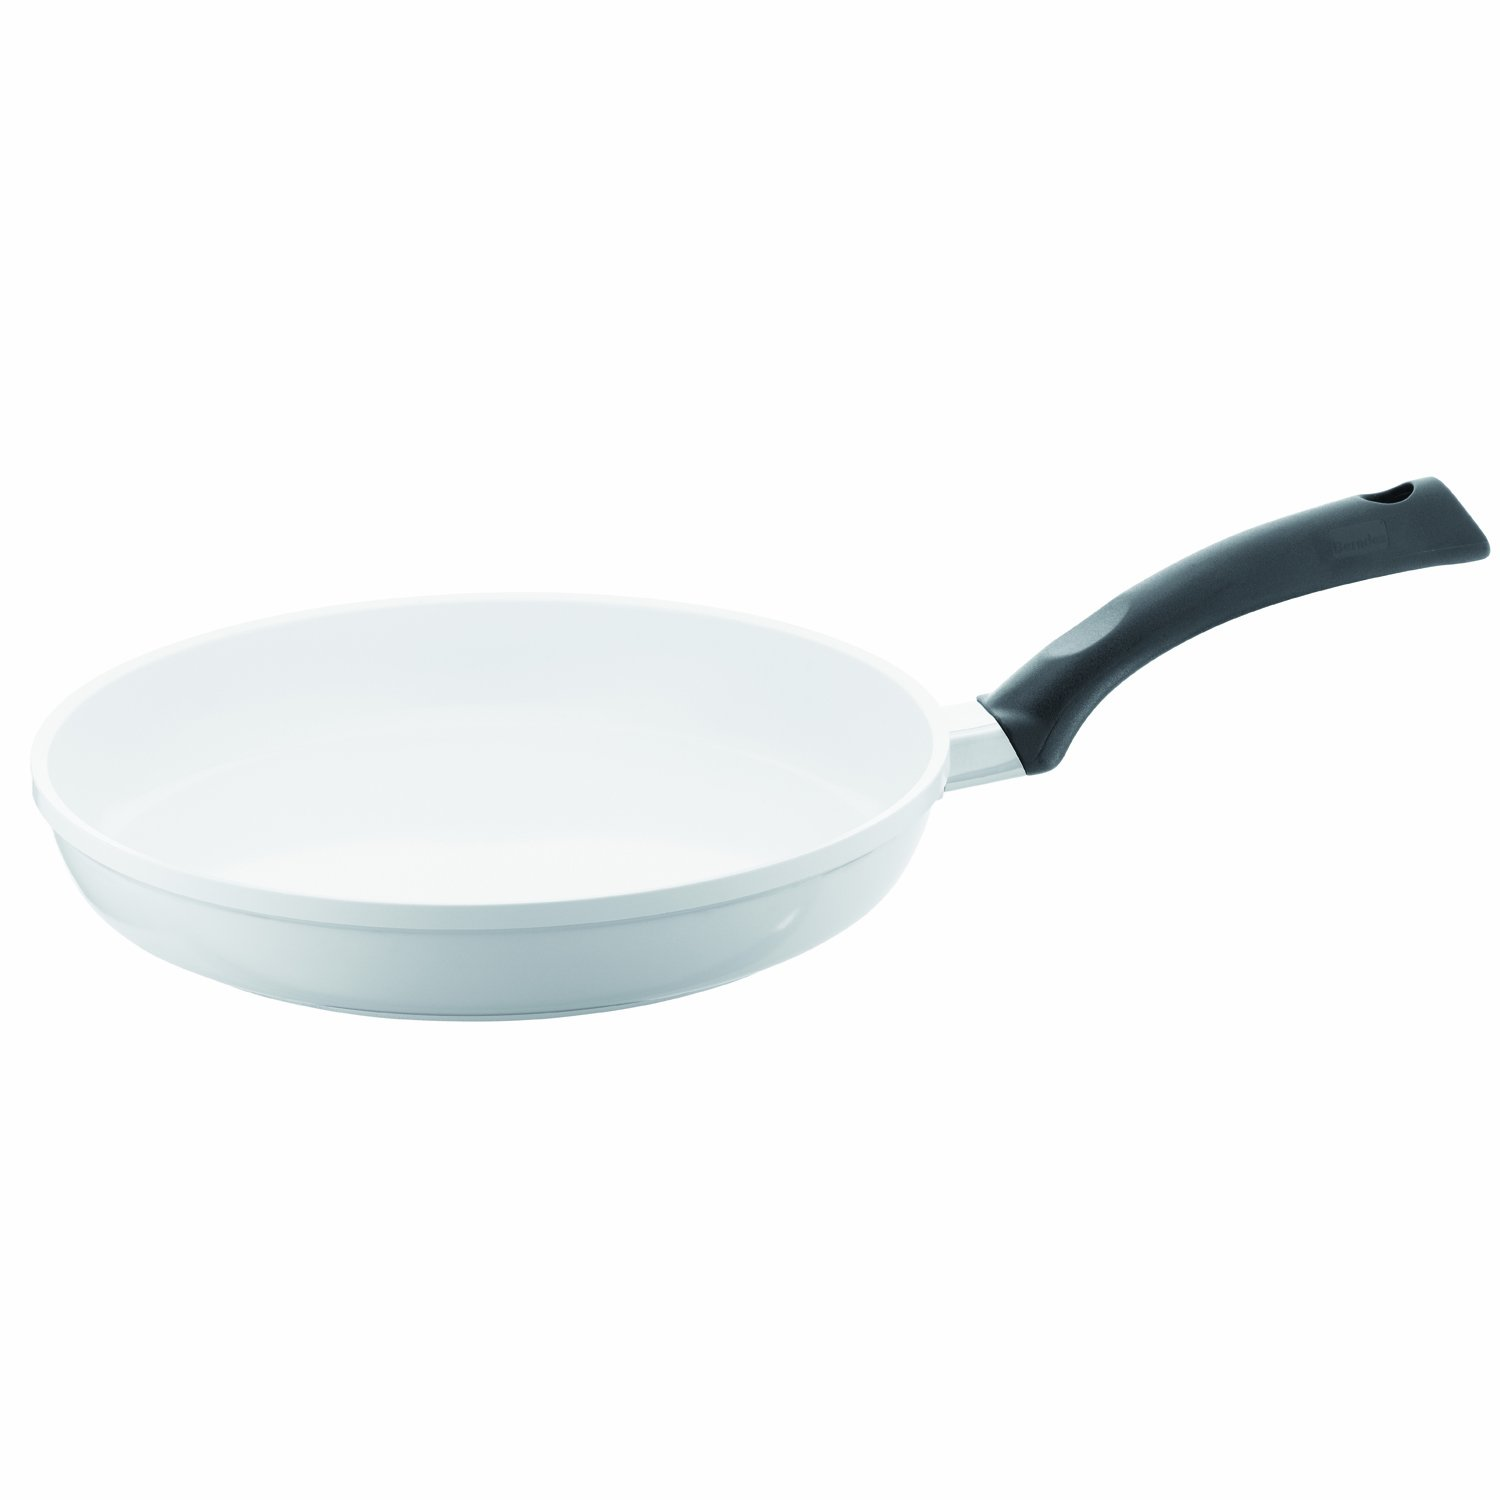 Berndes 697628 SignoCast Pearl Fry Pan, 11.5-Inch